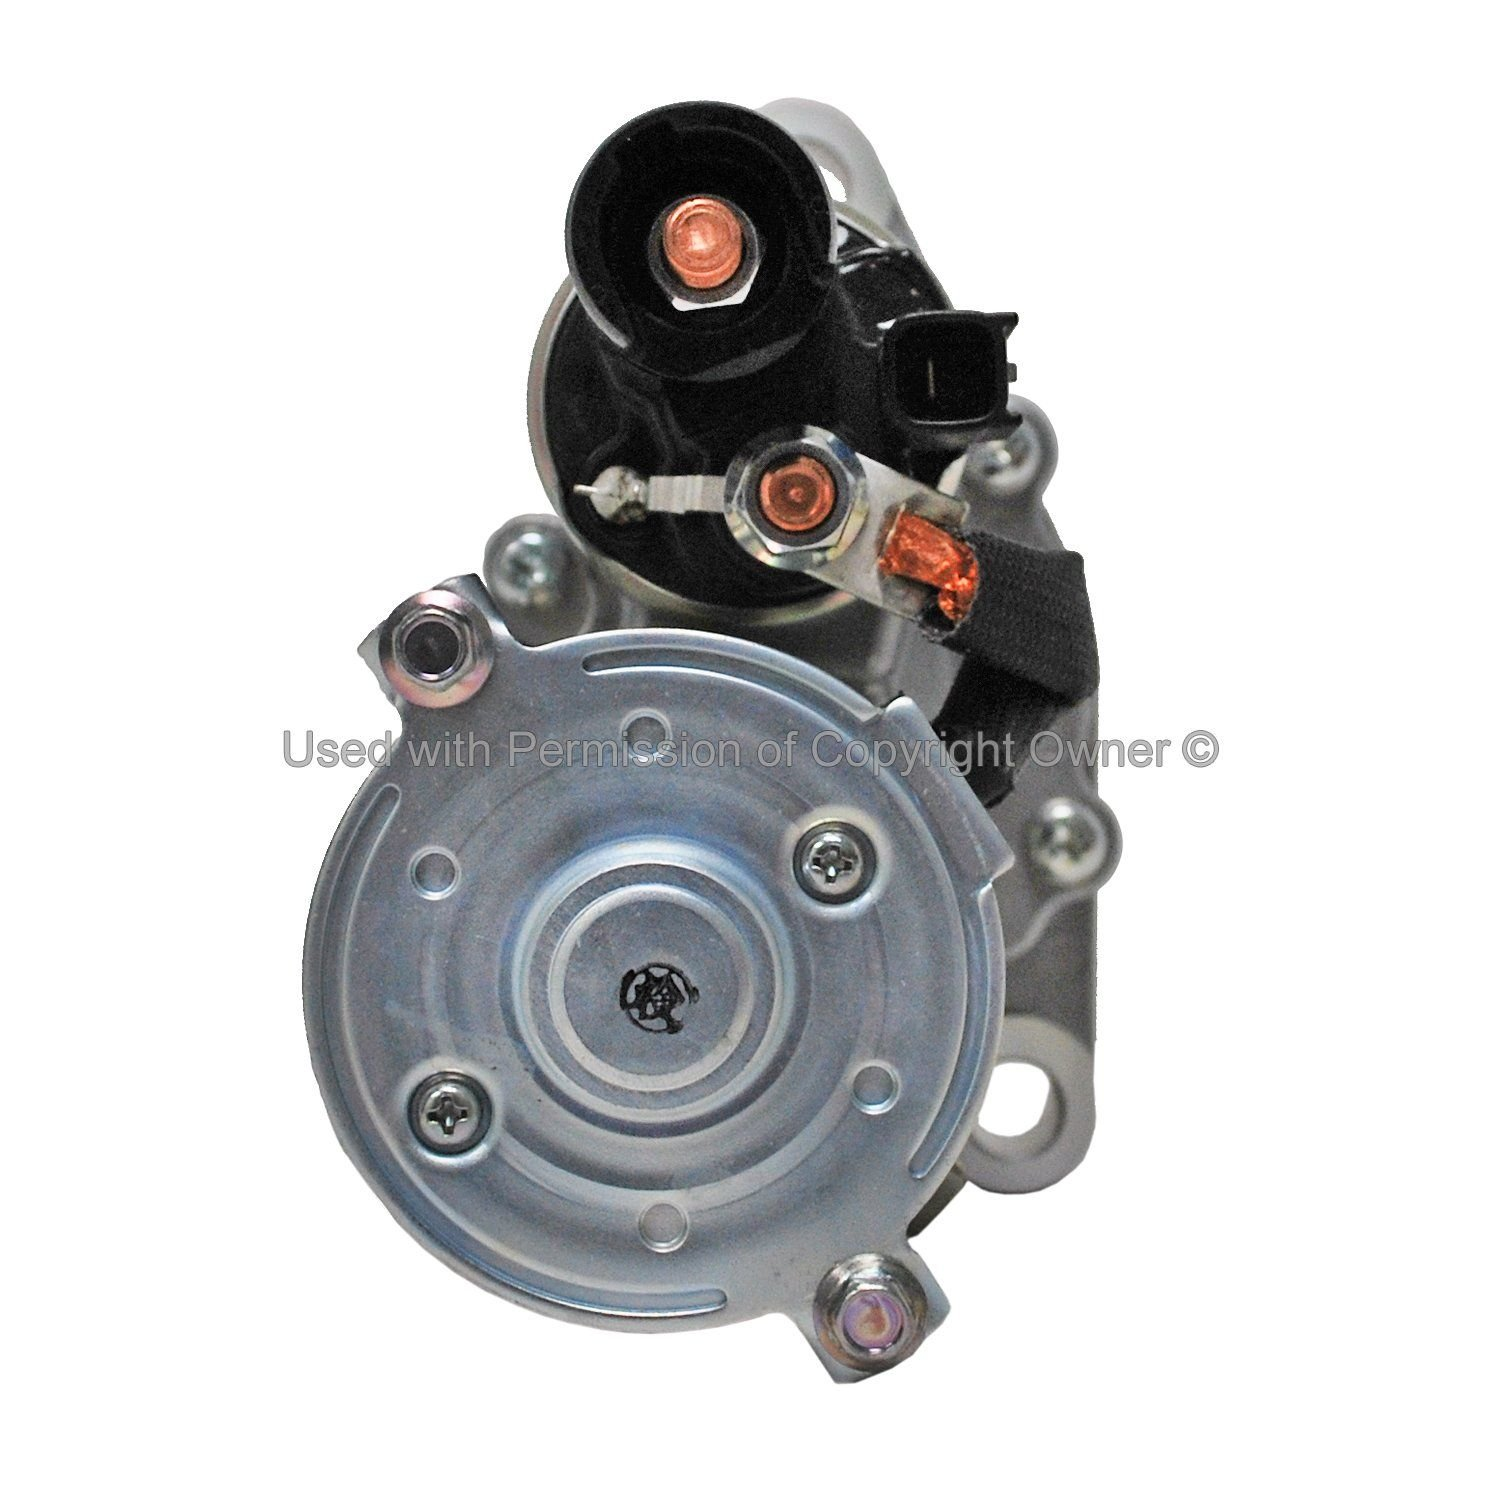 Honda Accord Starter Motor Replacement Bbb Industries Bosch Denso 2008 6 Cyl 35l Mpa 19016